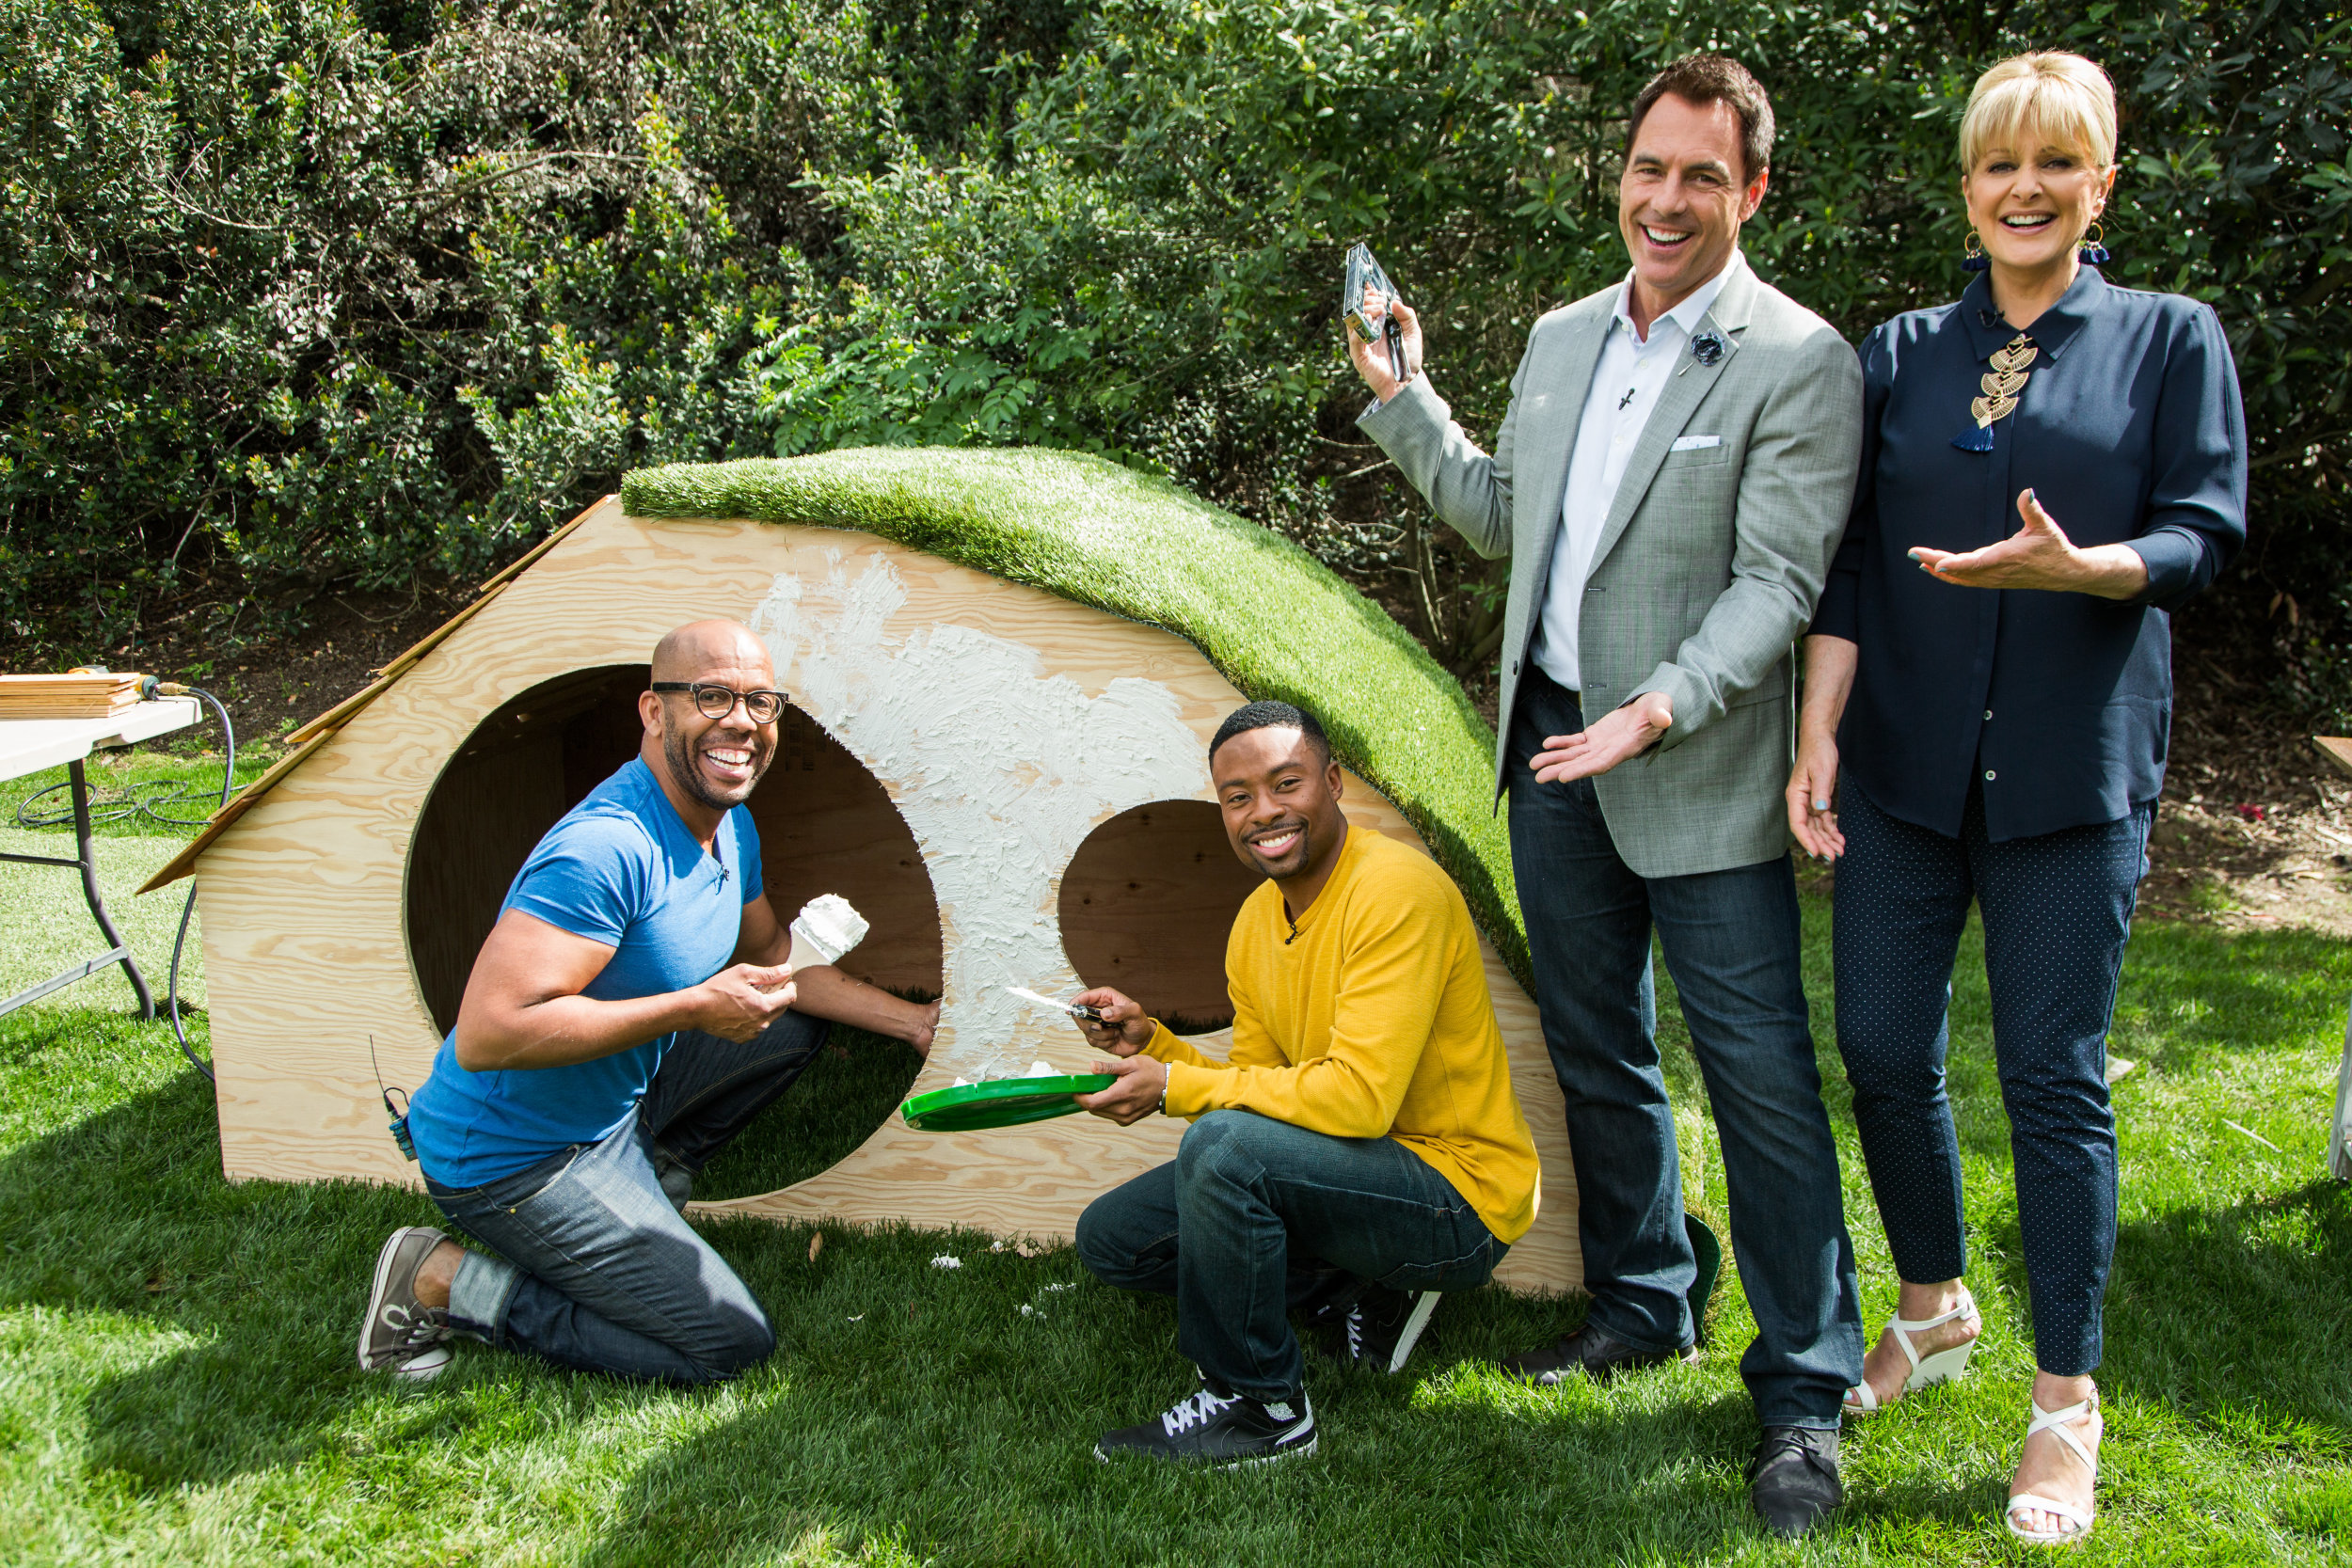 Diy hobbit hole playhouse home family video for How to build a hobbit hole playhouse